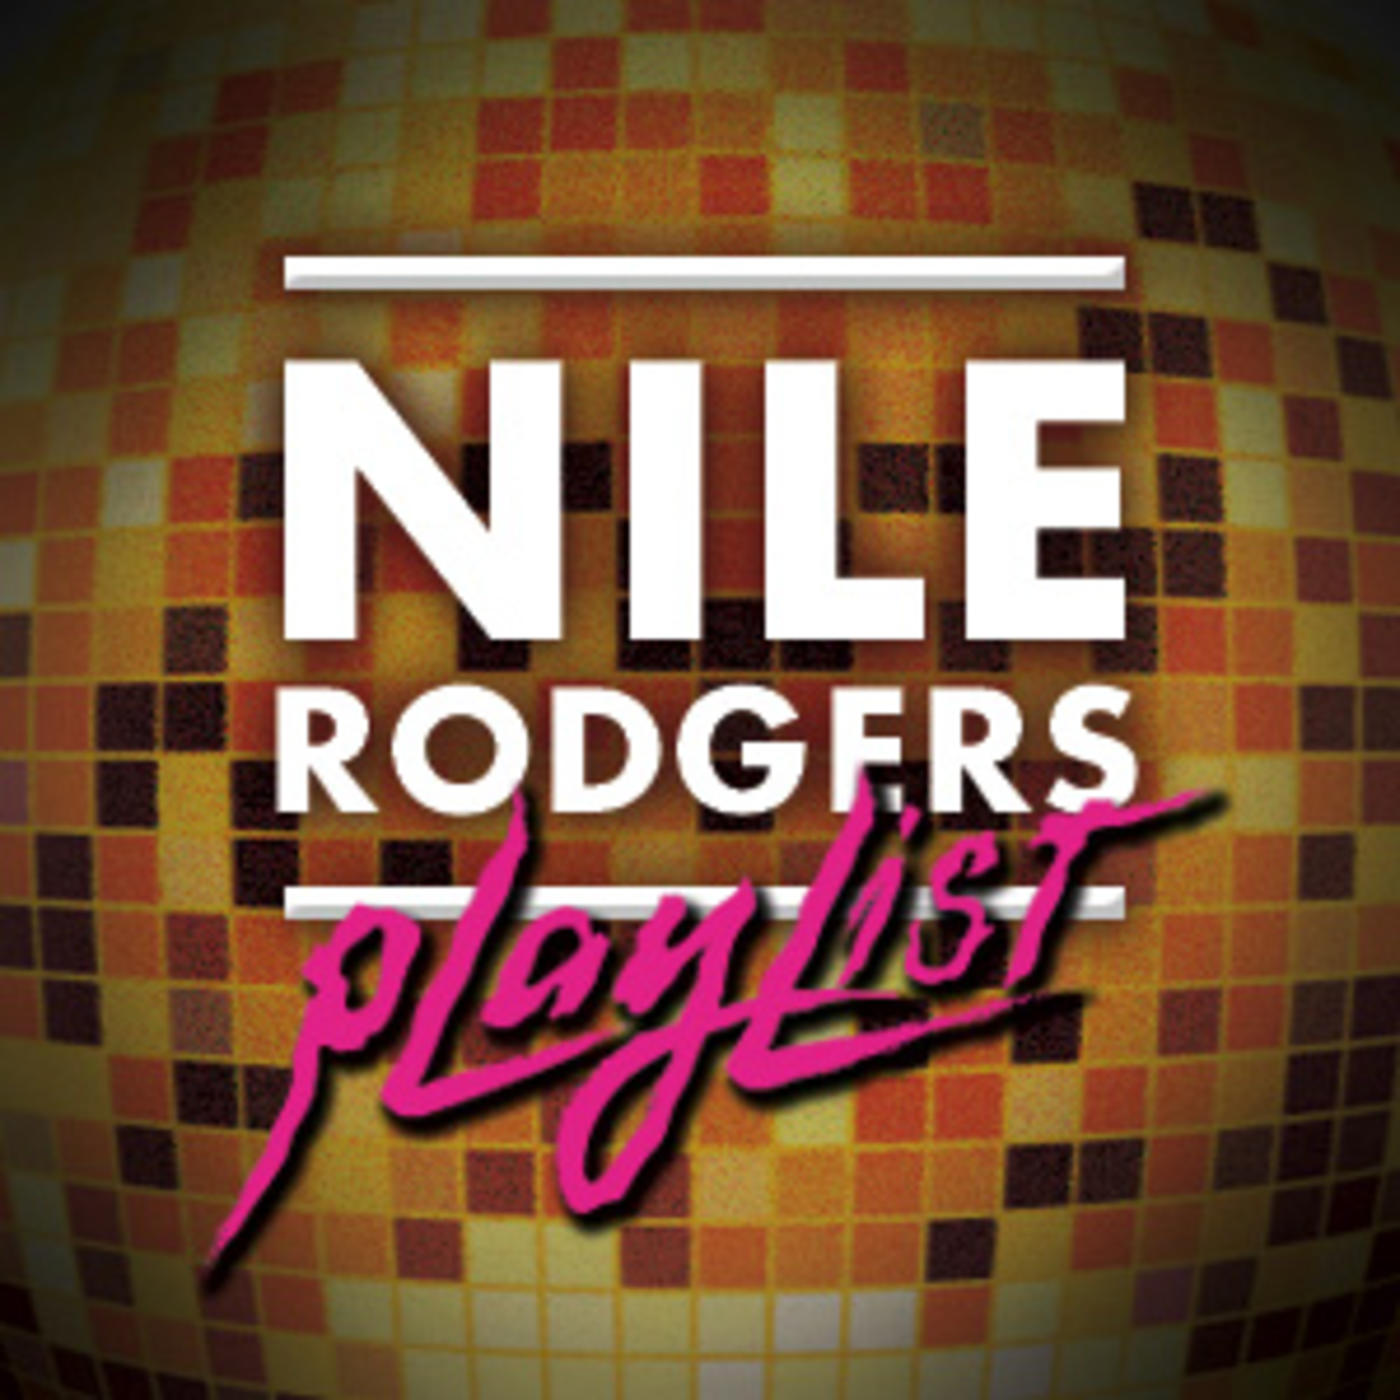 Nile Rodgers - Chic, Daft Punk, Pharrell Williams, Nile Rodgers, David Bowie, Sister Sledge, Chic, Madonna, INXS, Duran Duran, The B-52's, The Sugarhill Gang, Madonna, Adam Lambert